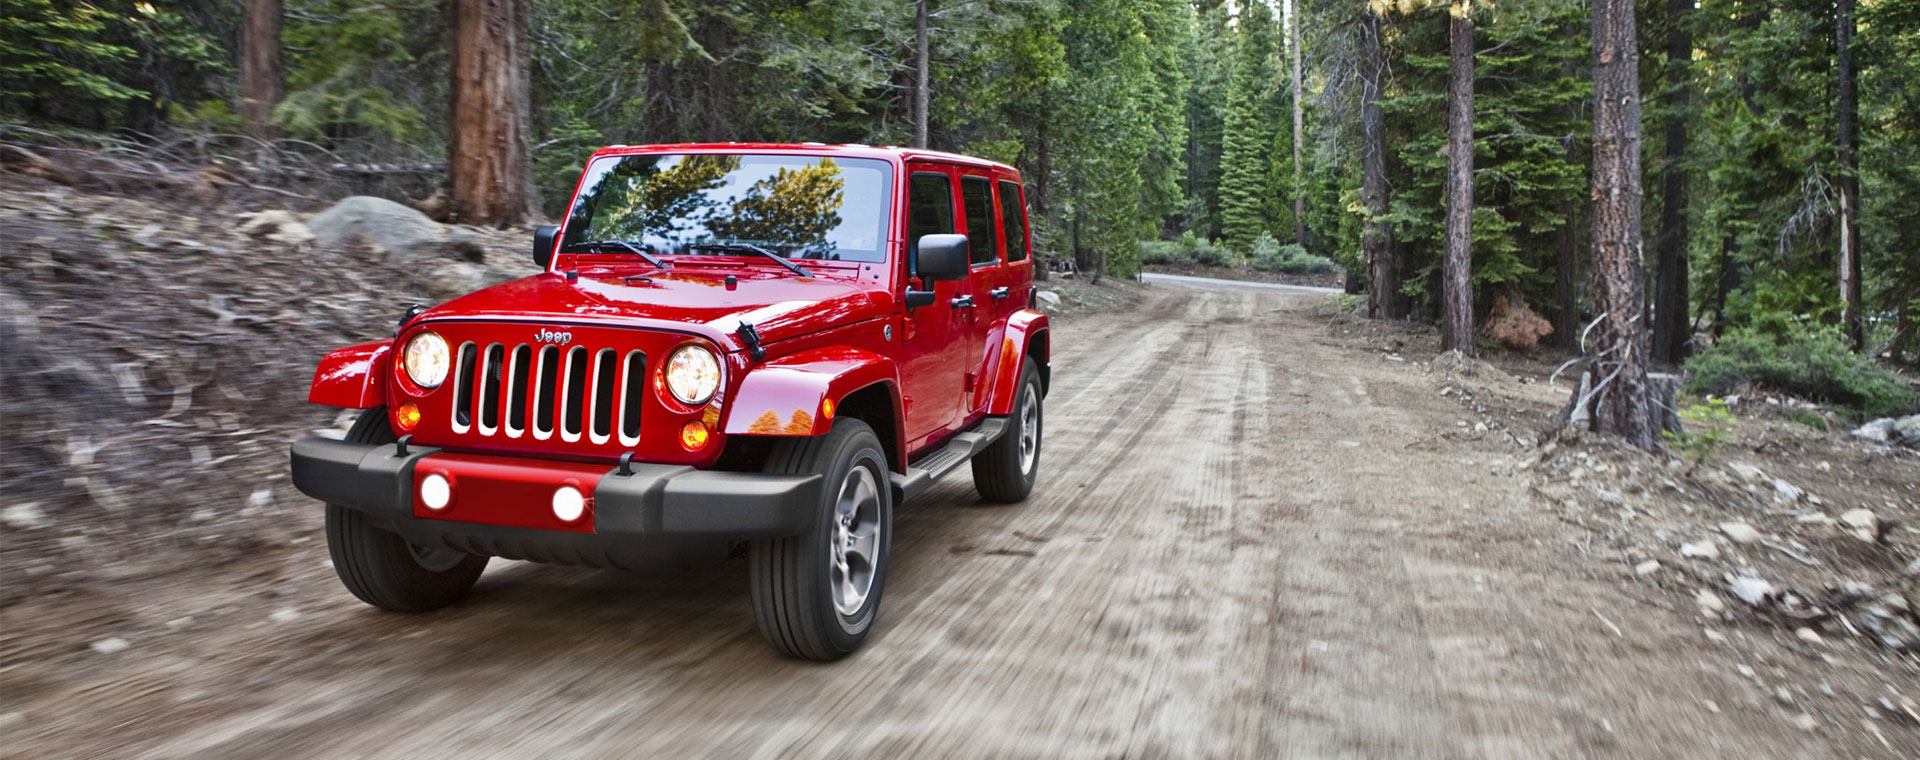 New Wrangler Unlimited inventory at Quirk Chrysler Jeep